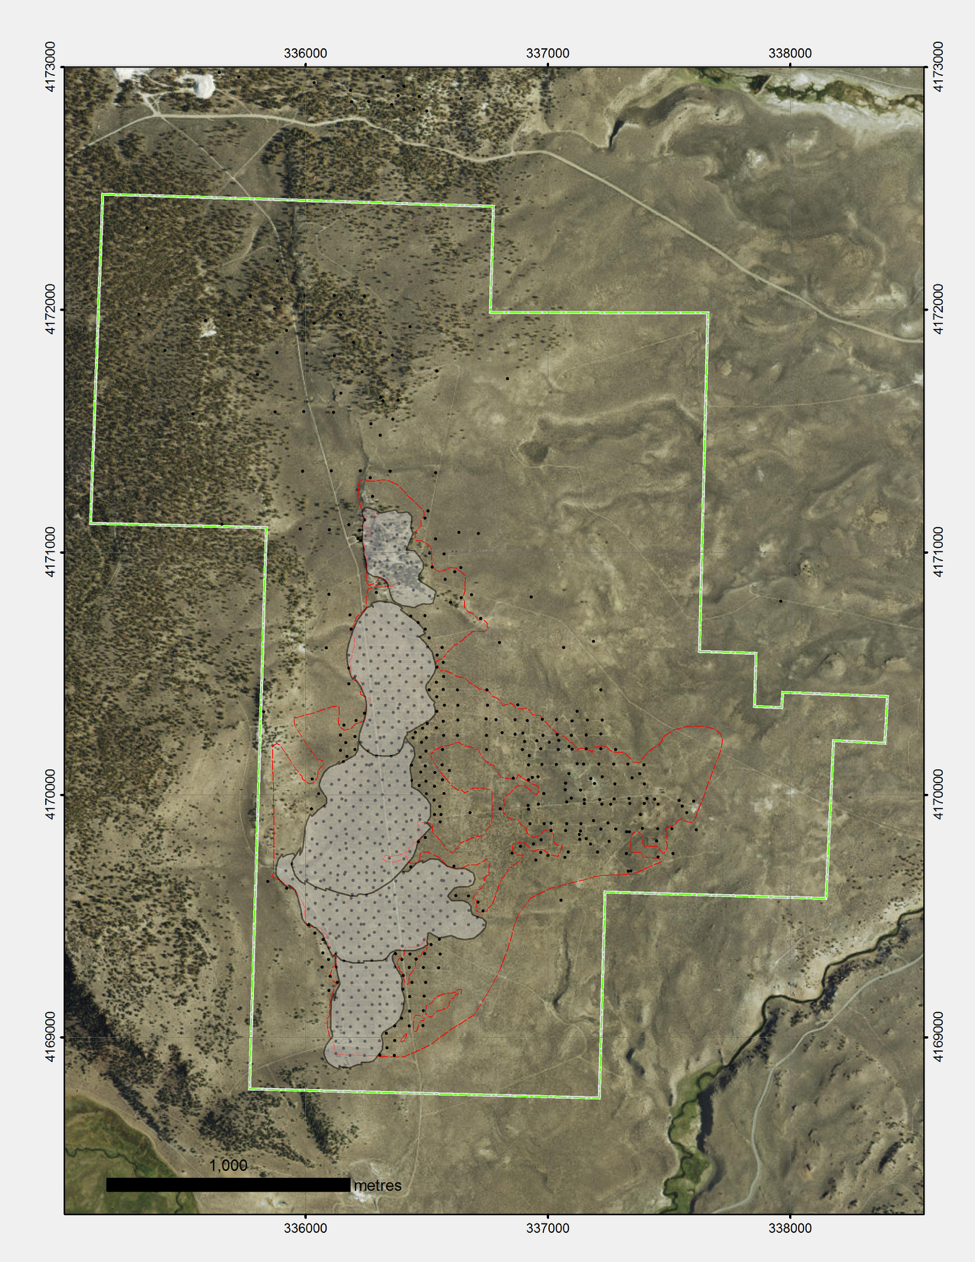 Figure: Drill collars for 876 RC, air track and rotary holes, 20 diamond drill holes for total 81,770m. The zone outlined in red indicates mineralized zones. The shaded area represents the resource and proposed pit outlines.